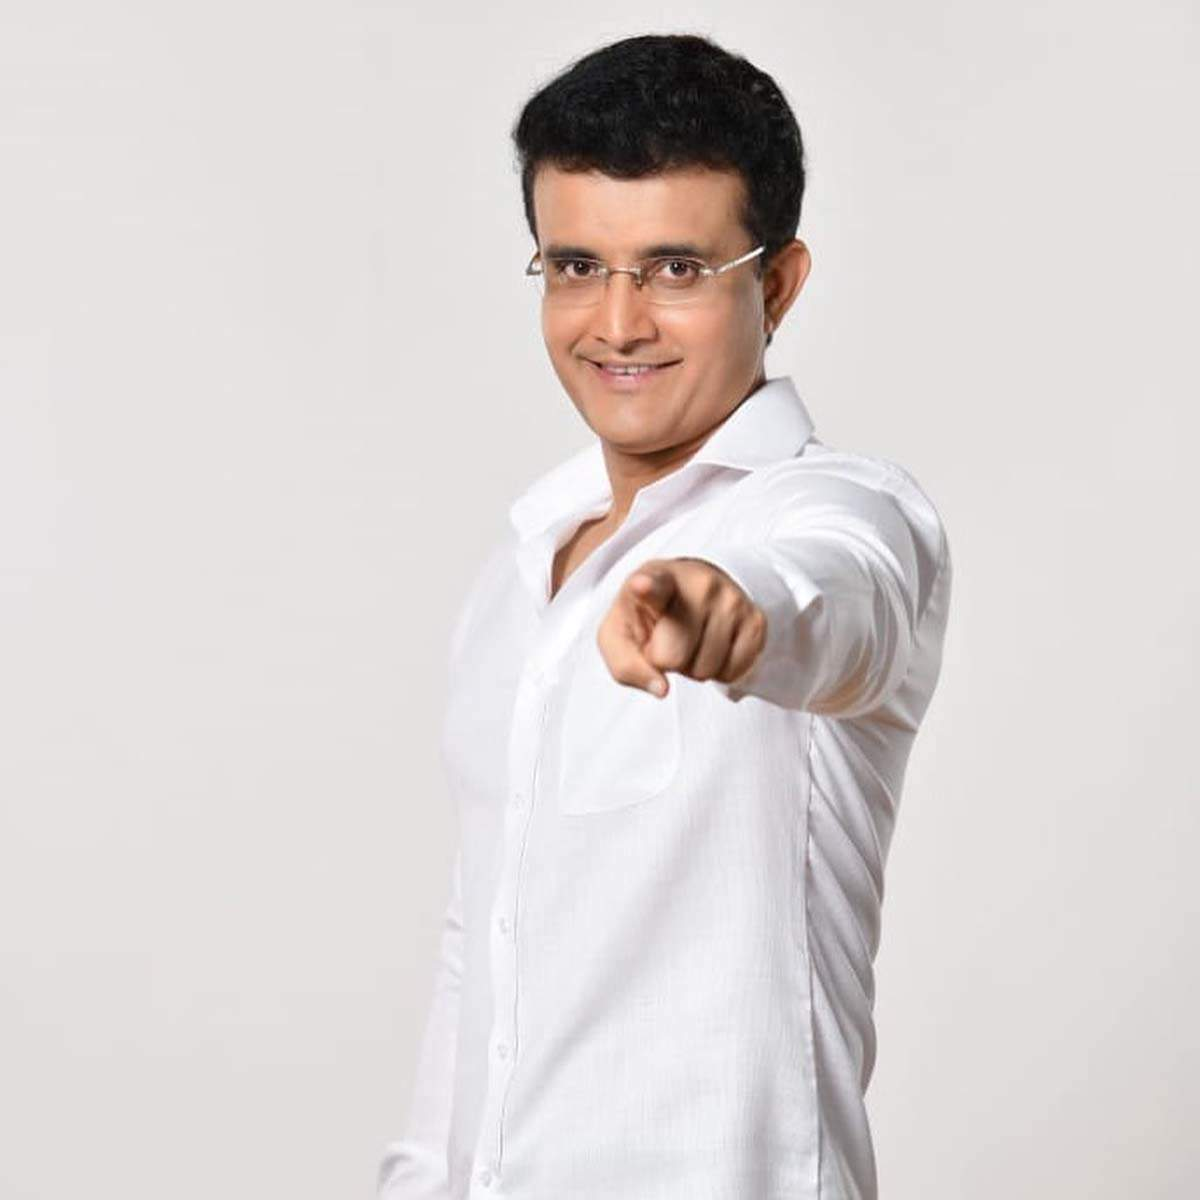 Sourav Ganguly says Hrithik Roshan has to get a body like him to star in his biopic